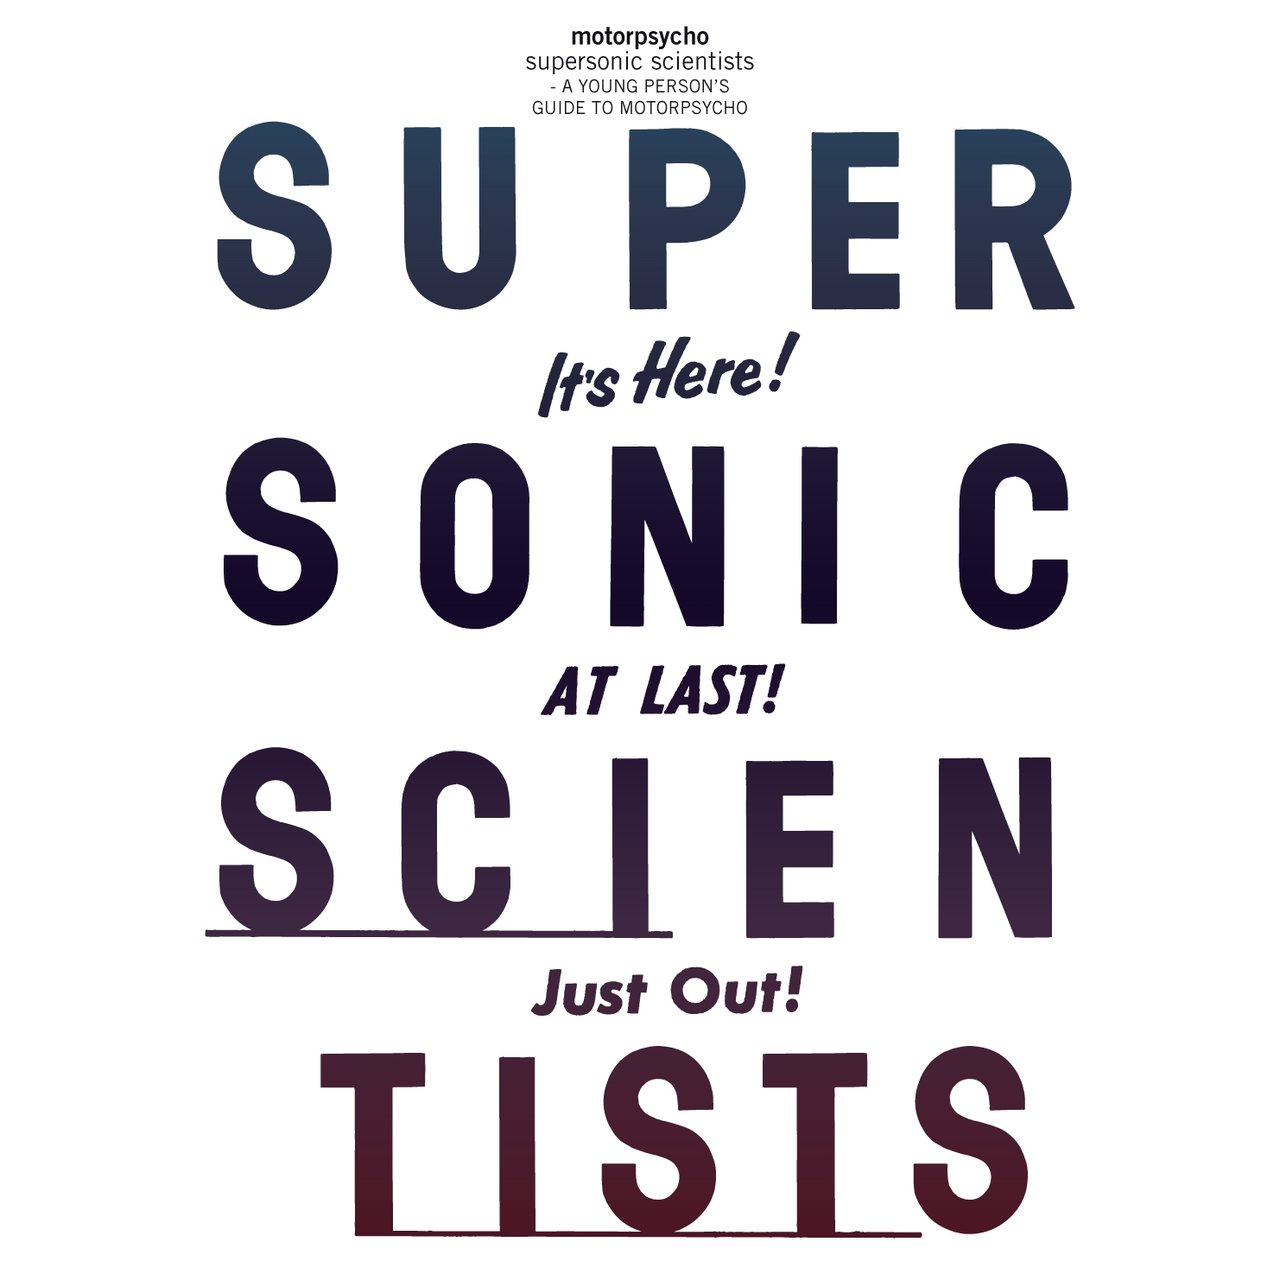 Supersonic Scientists